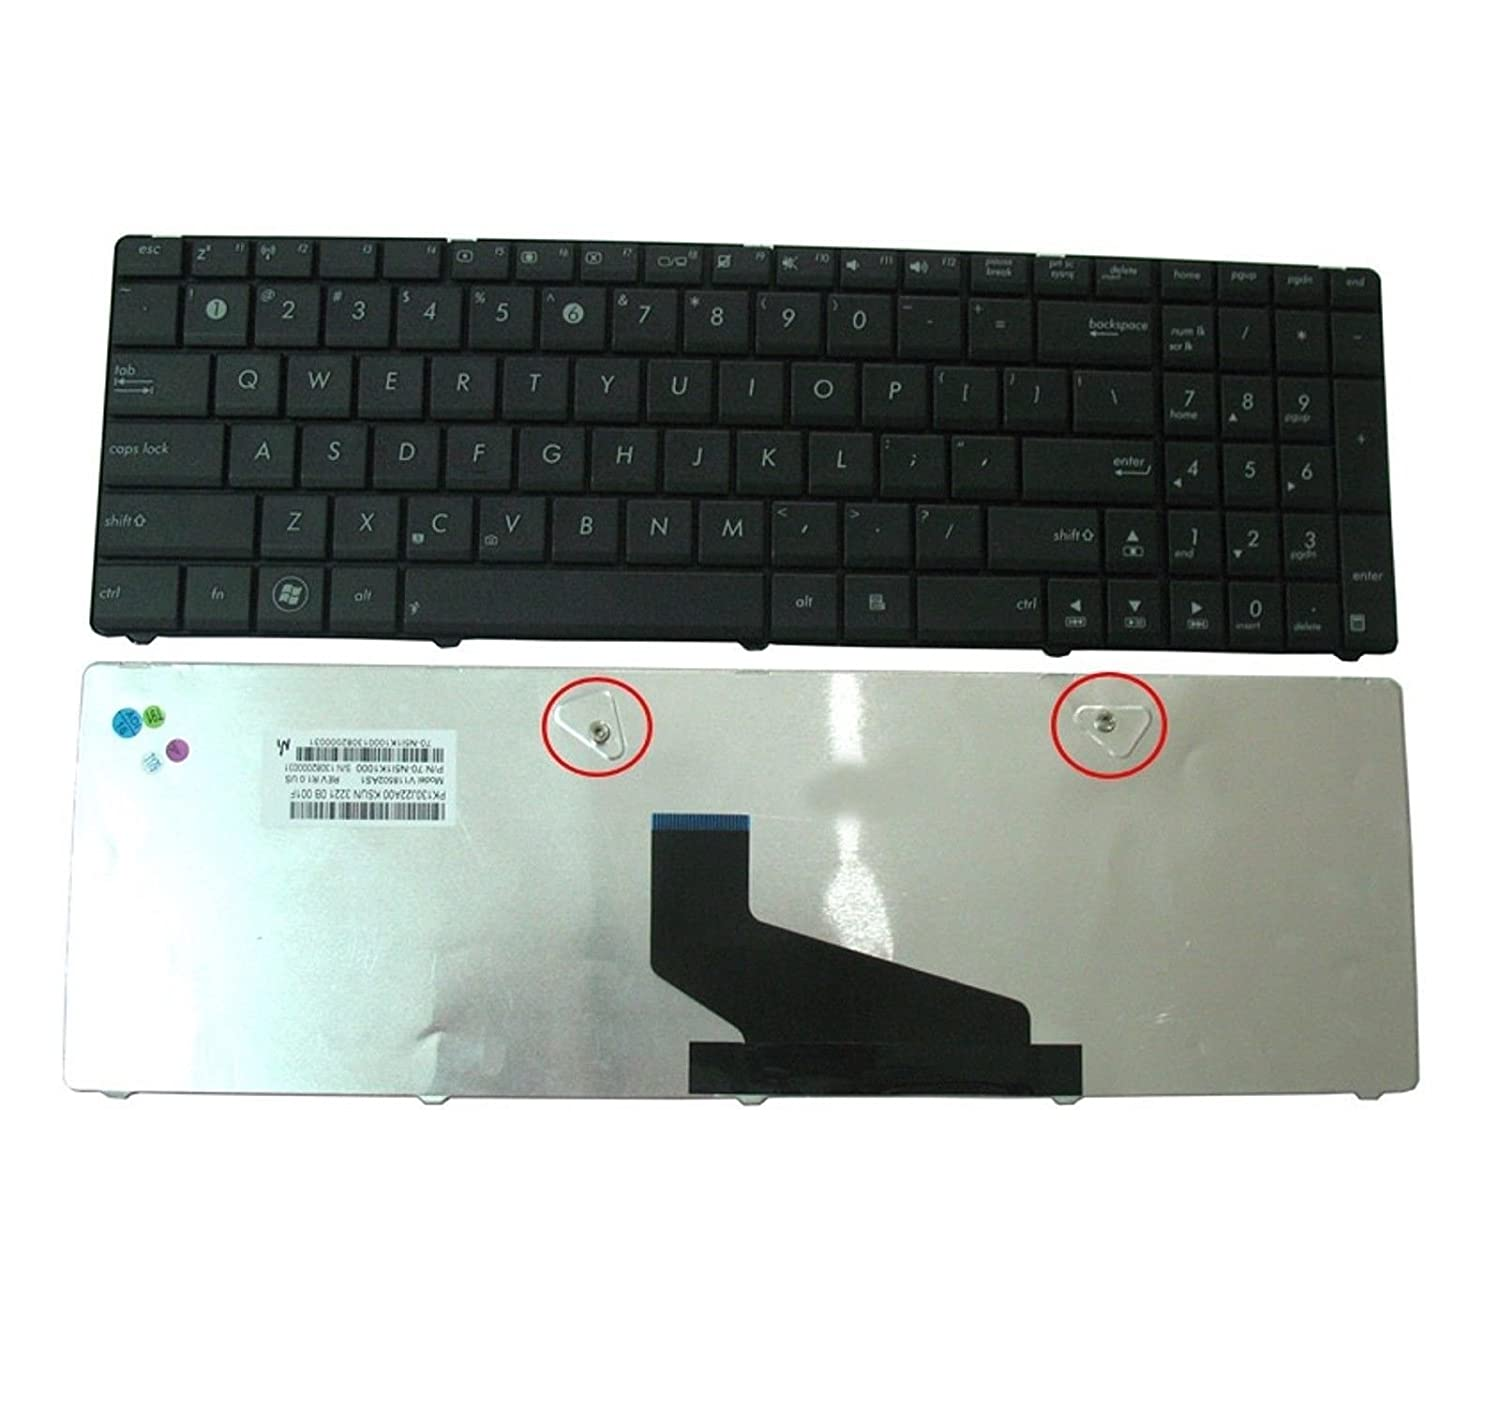 ASUS N61JV KEYBOARD DEVICE FILTER WINDOWS 8 DRIVERS DOWNLOAD (2019)